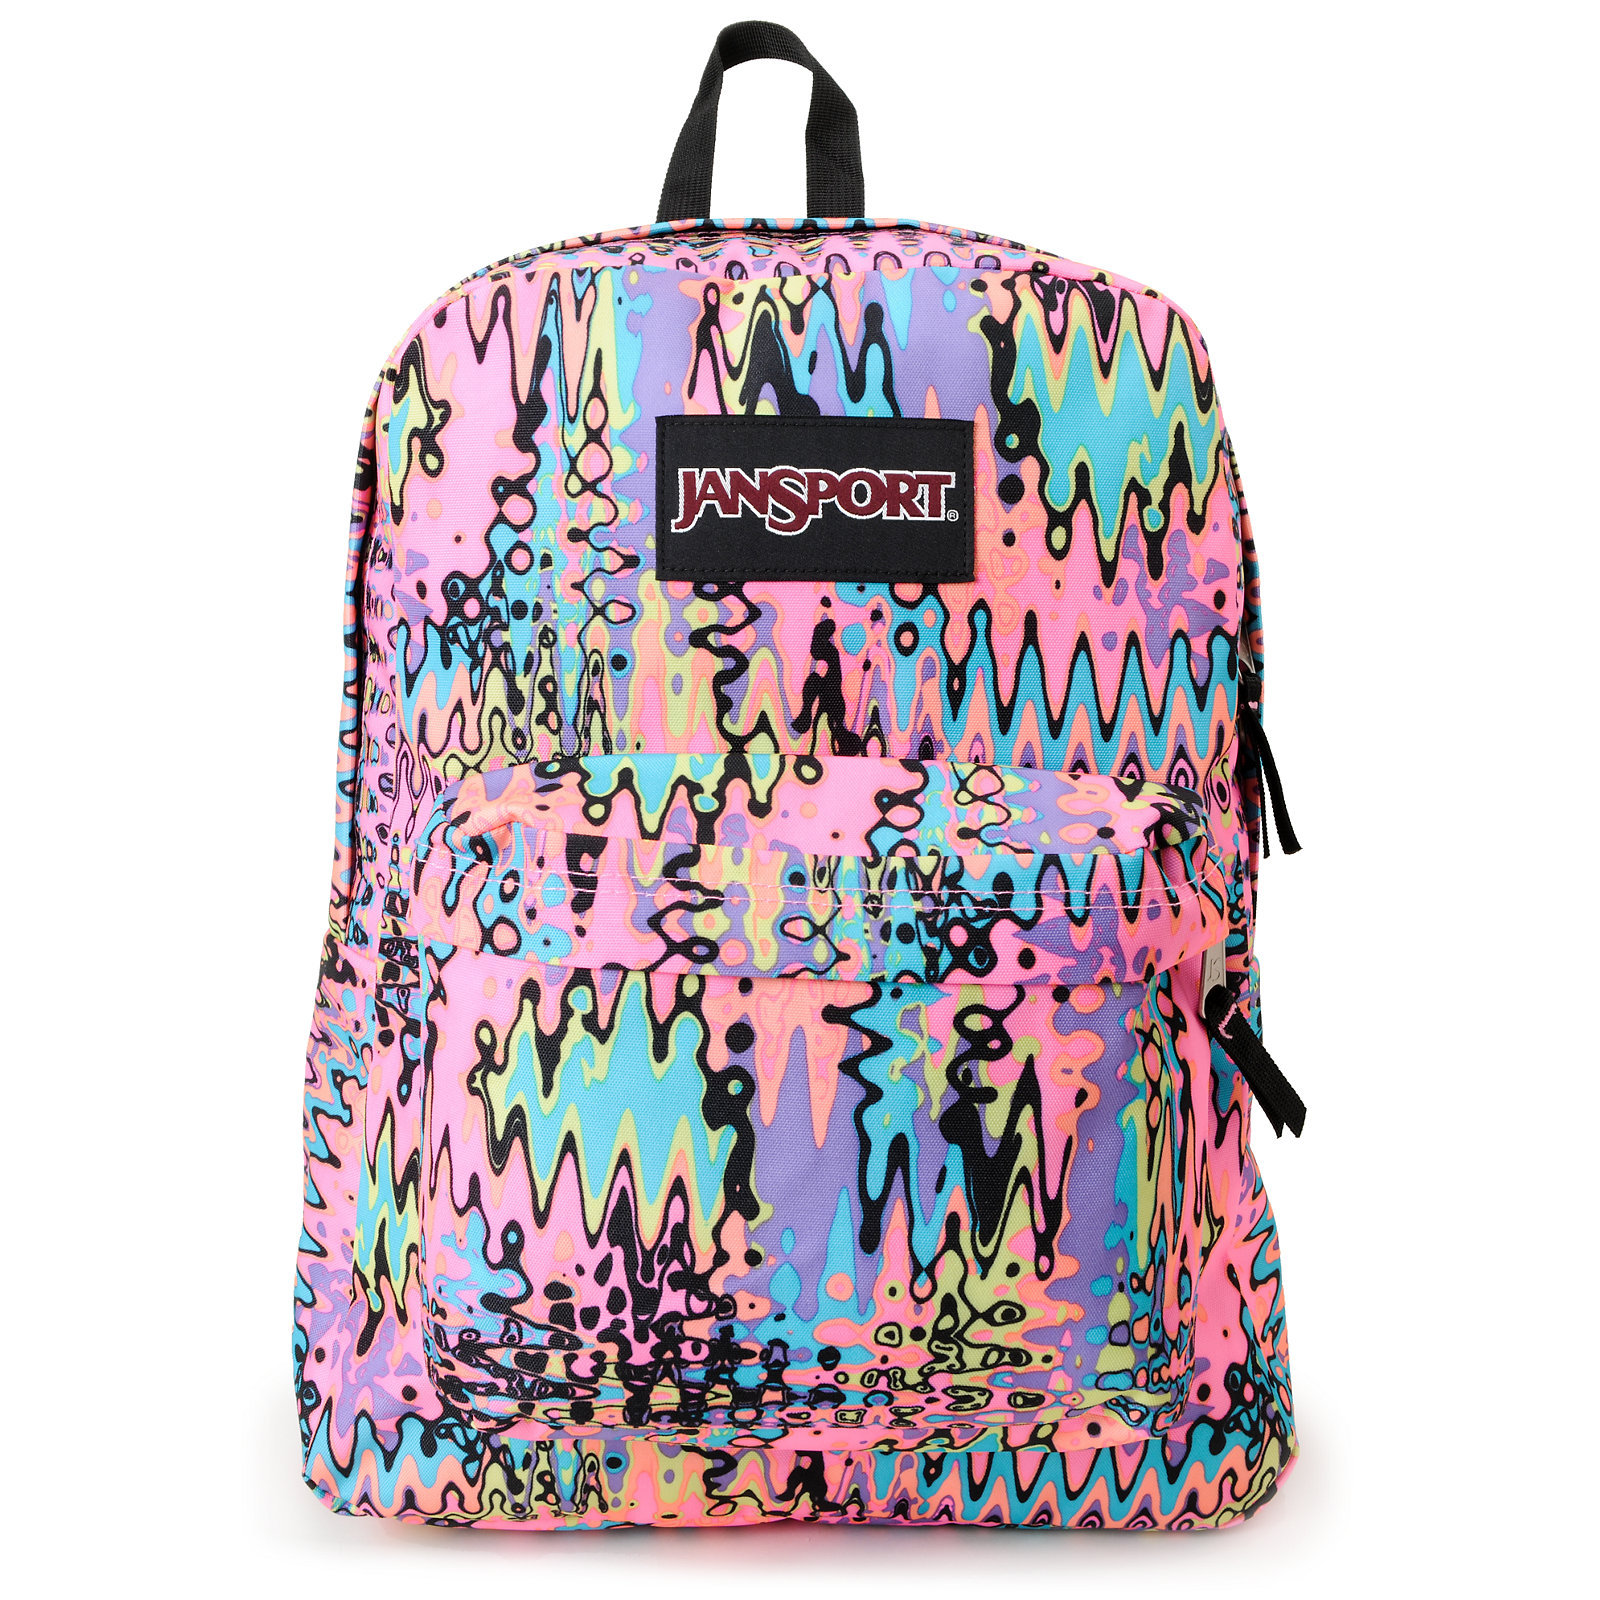 Jansport Girls Backpacks RnU7Frd6